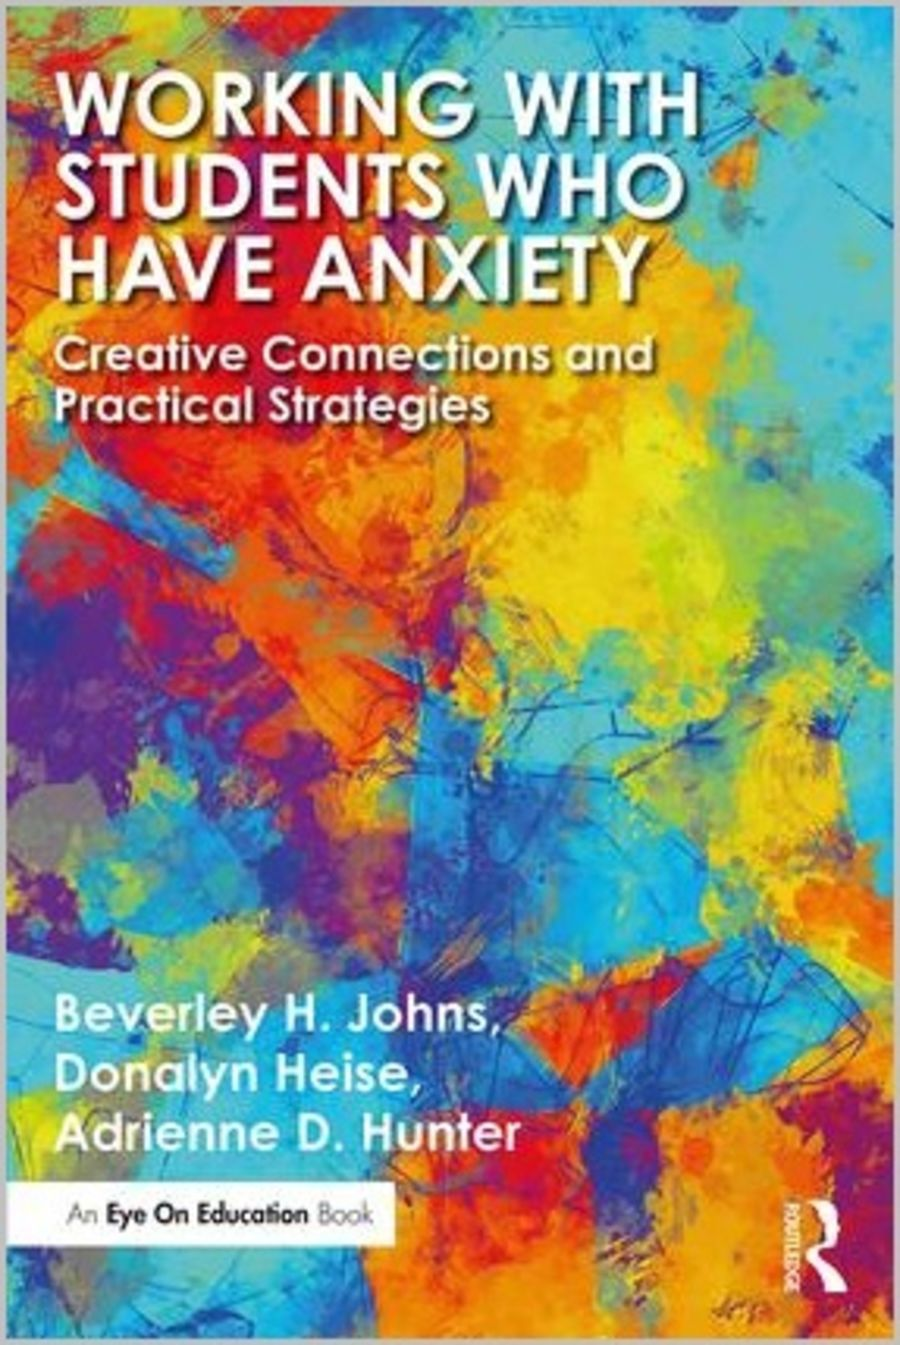 Working with Students who have Anxiety